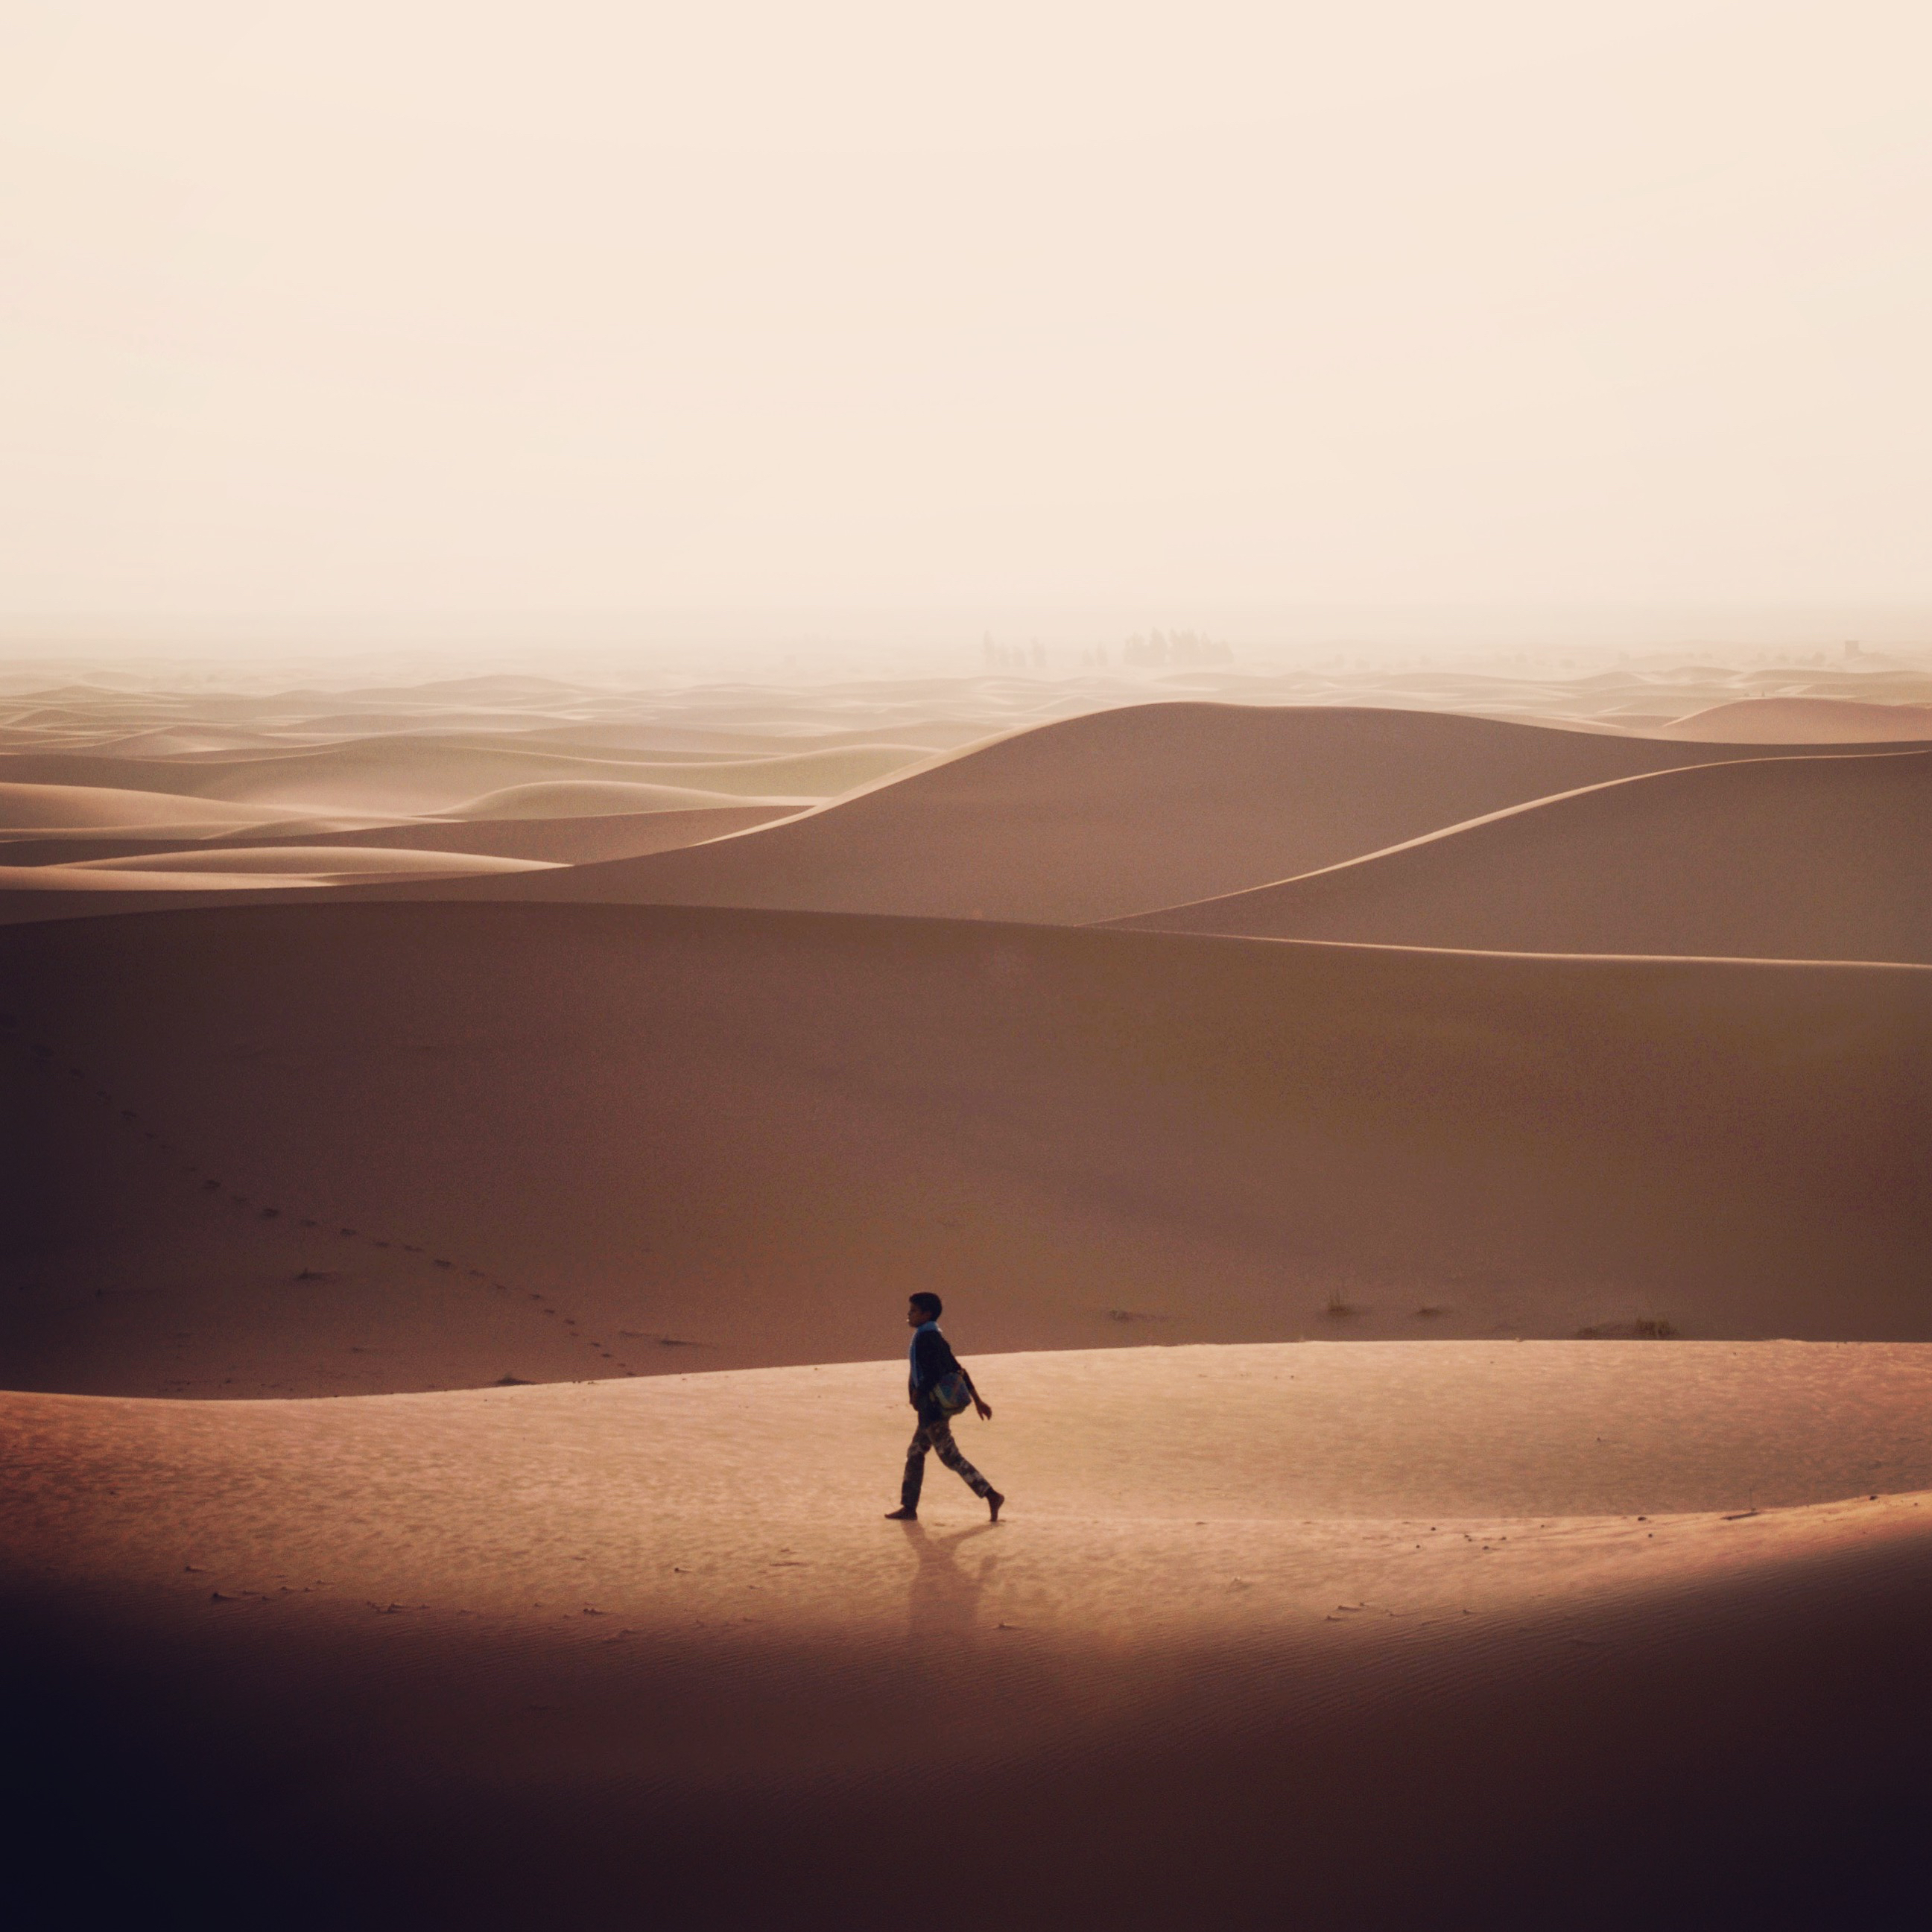 Young Boy in Desert Alone